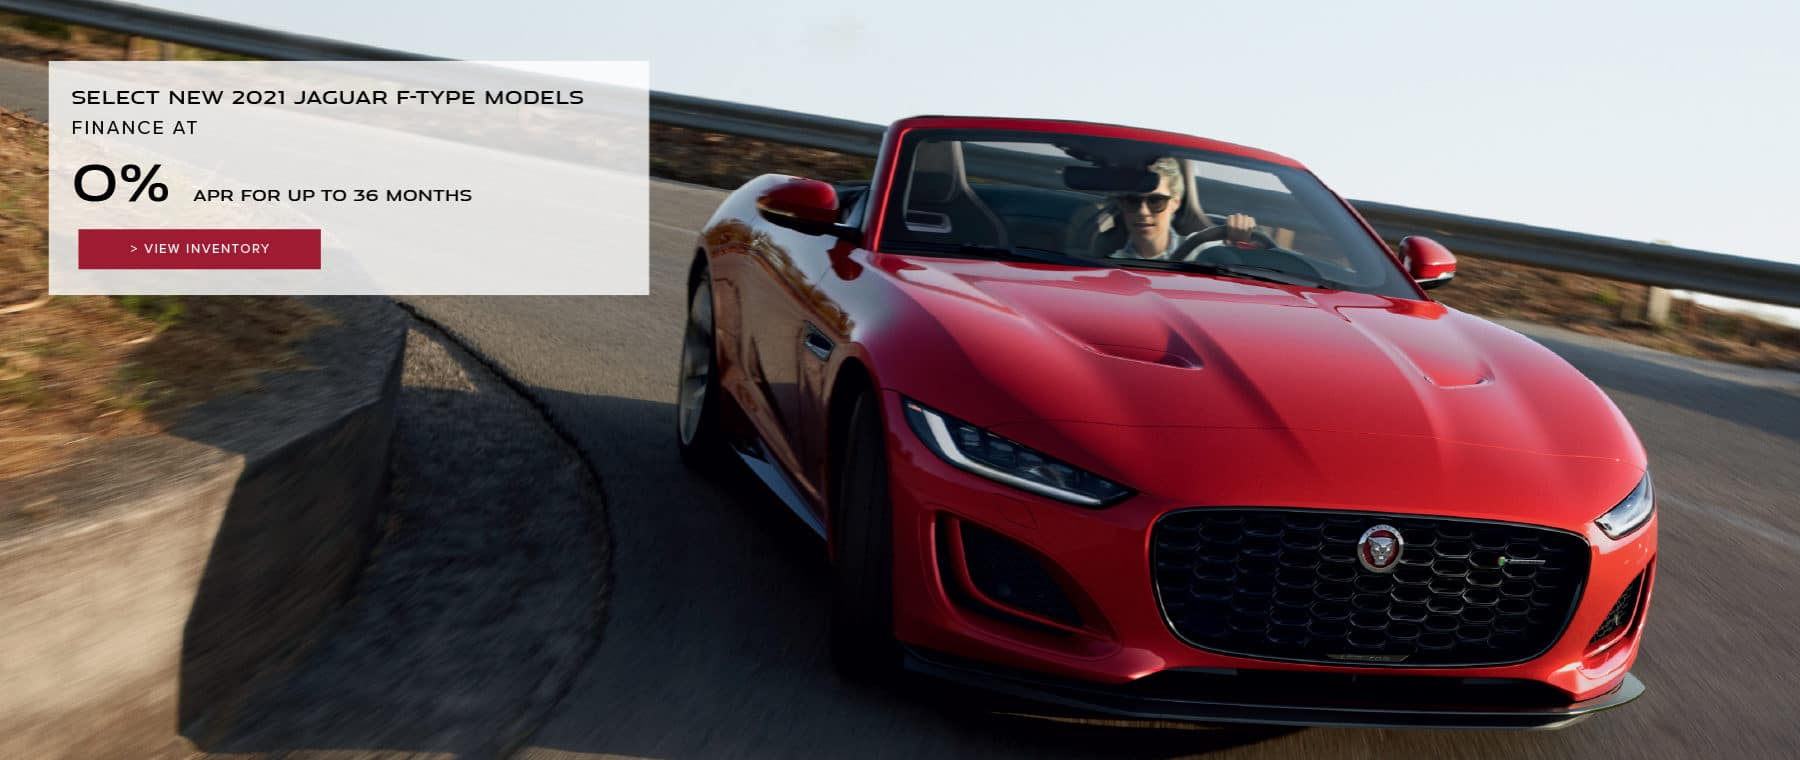 SELECT NEW 2021 JAGUAR F-TYPE MODELS. BASE MSRP FROM $61,600. FINANCE AT 0% APR FOR 24 TO 36 MONTHS. EXCLUDES TAXES, TITLE, LICENSE AND FEES. ENDS 6/30/2021. VIEW INVENTORY RED JAGUAR F-TYPE CONVERTIBLE DRIVING DOWN ROAD.